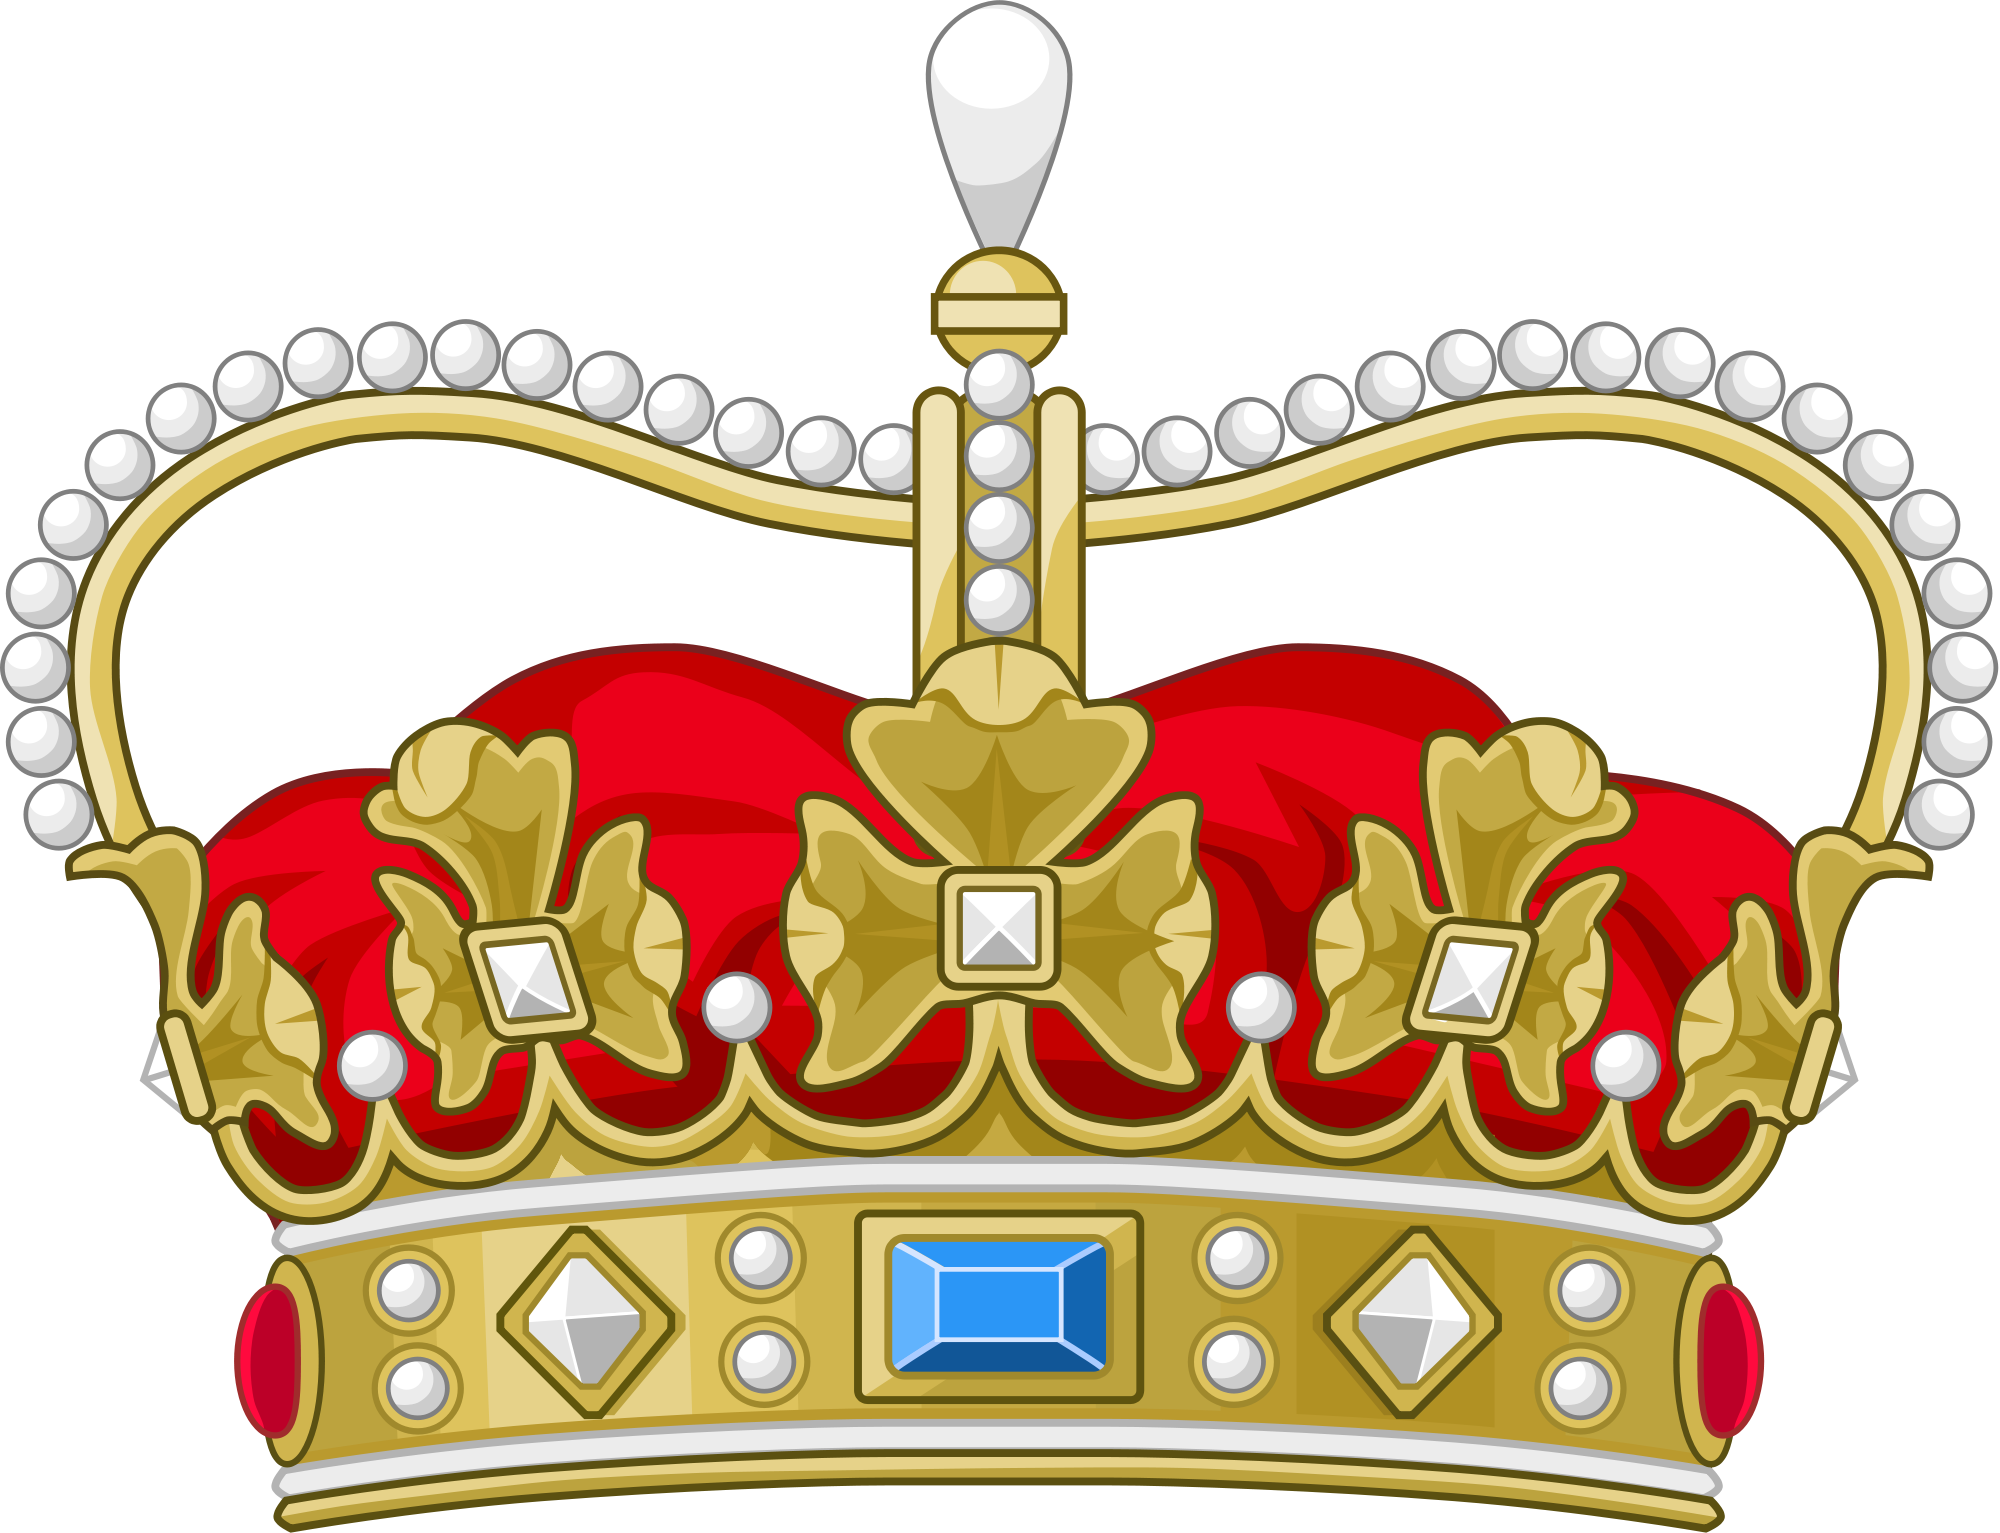 Prince crown clipart images banner stock Prince Crown (59+) banner stock